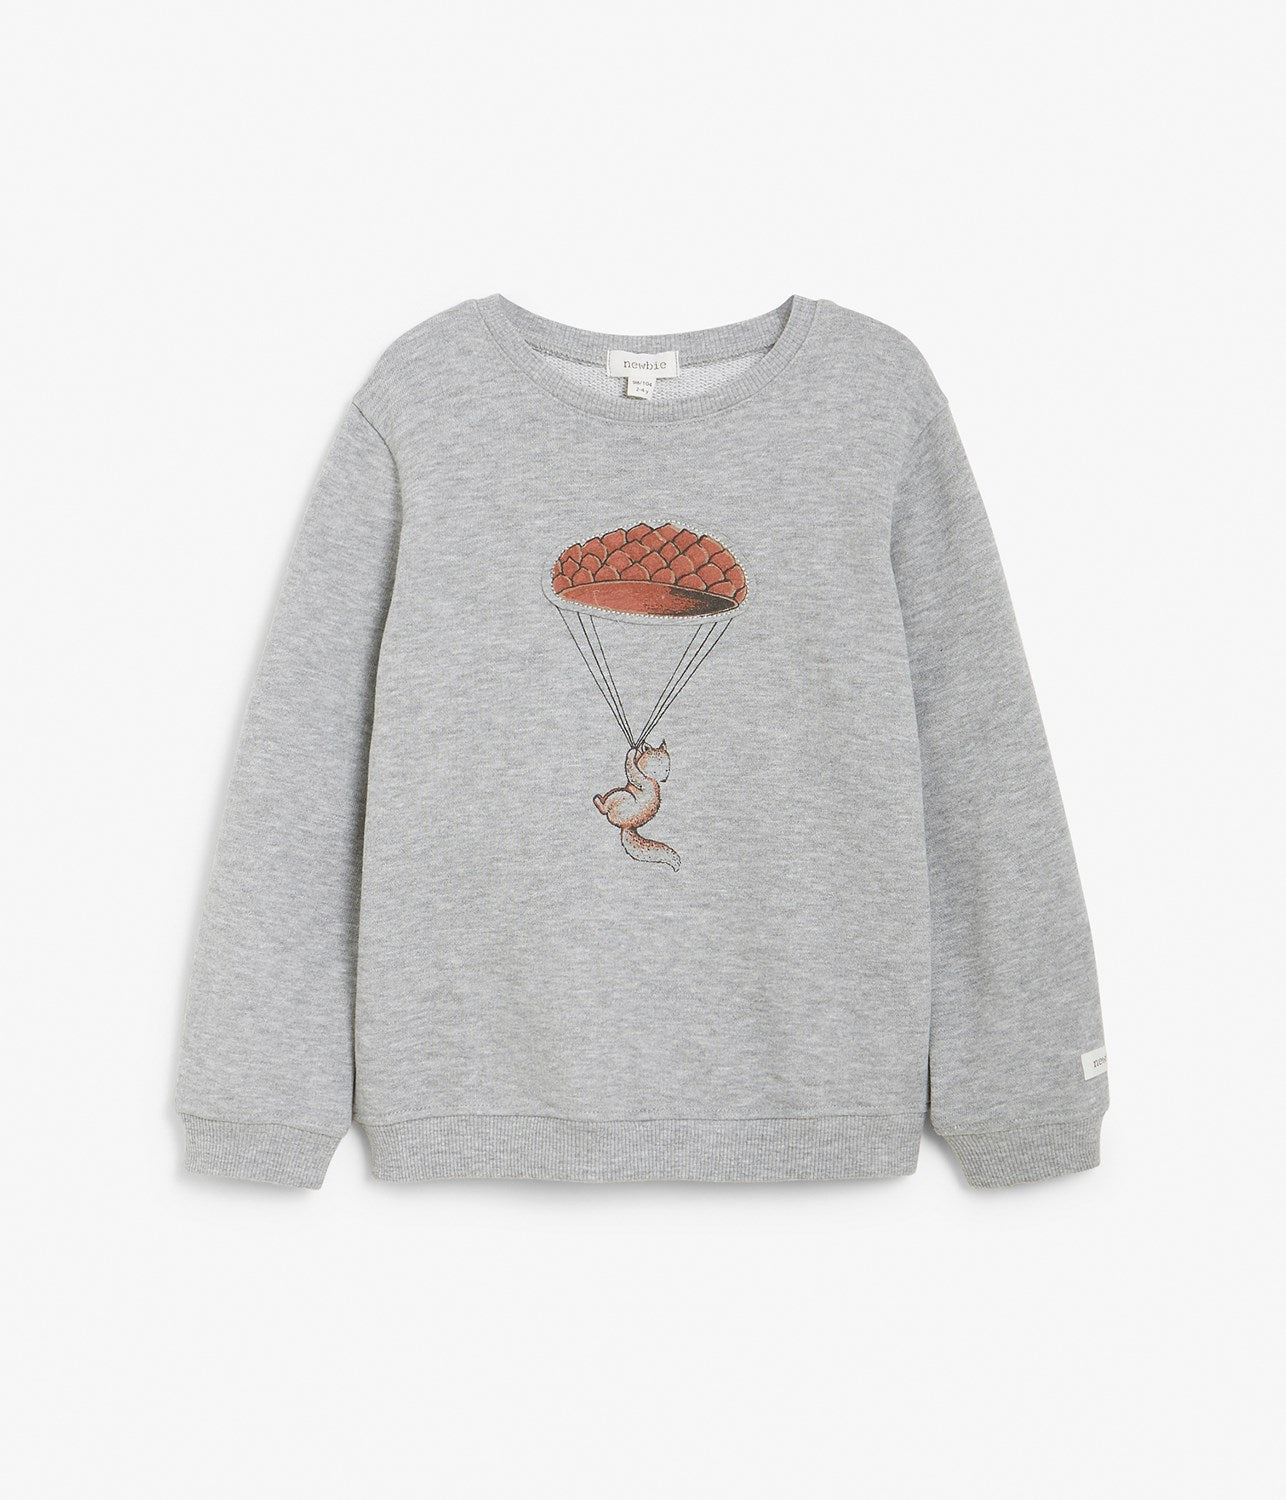 Kids grey sweatshirt with fox and balloon motif